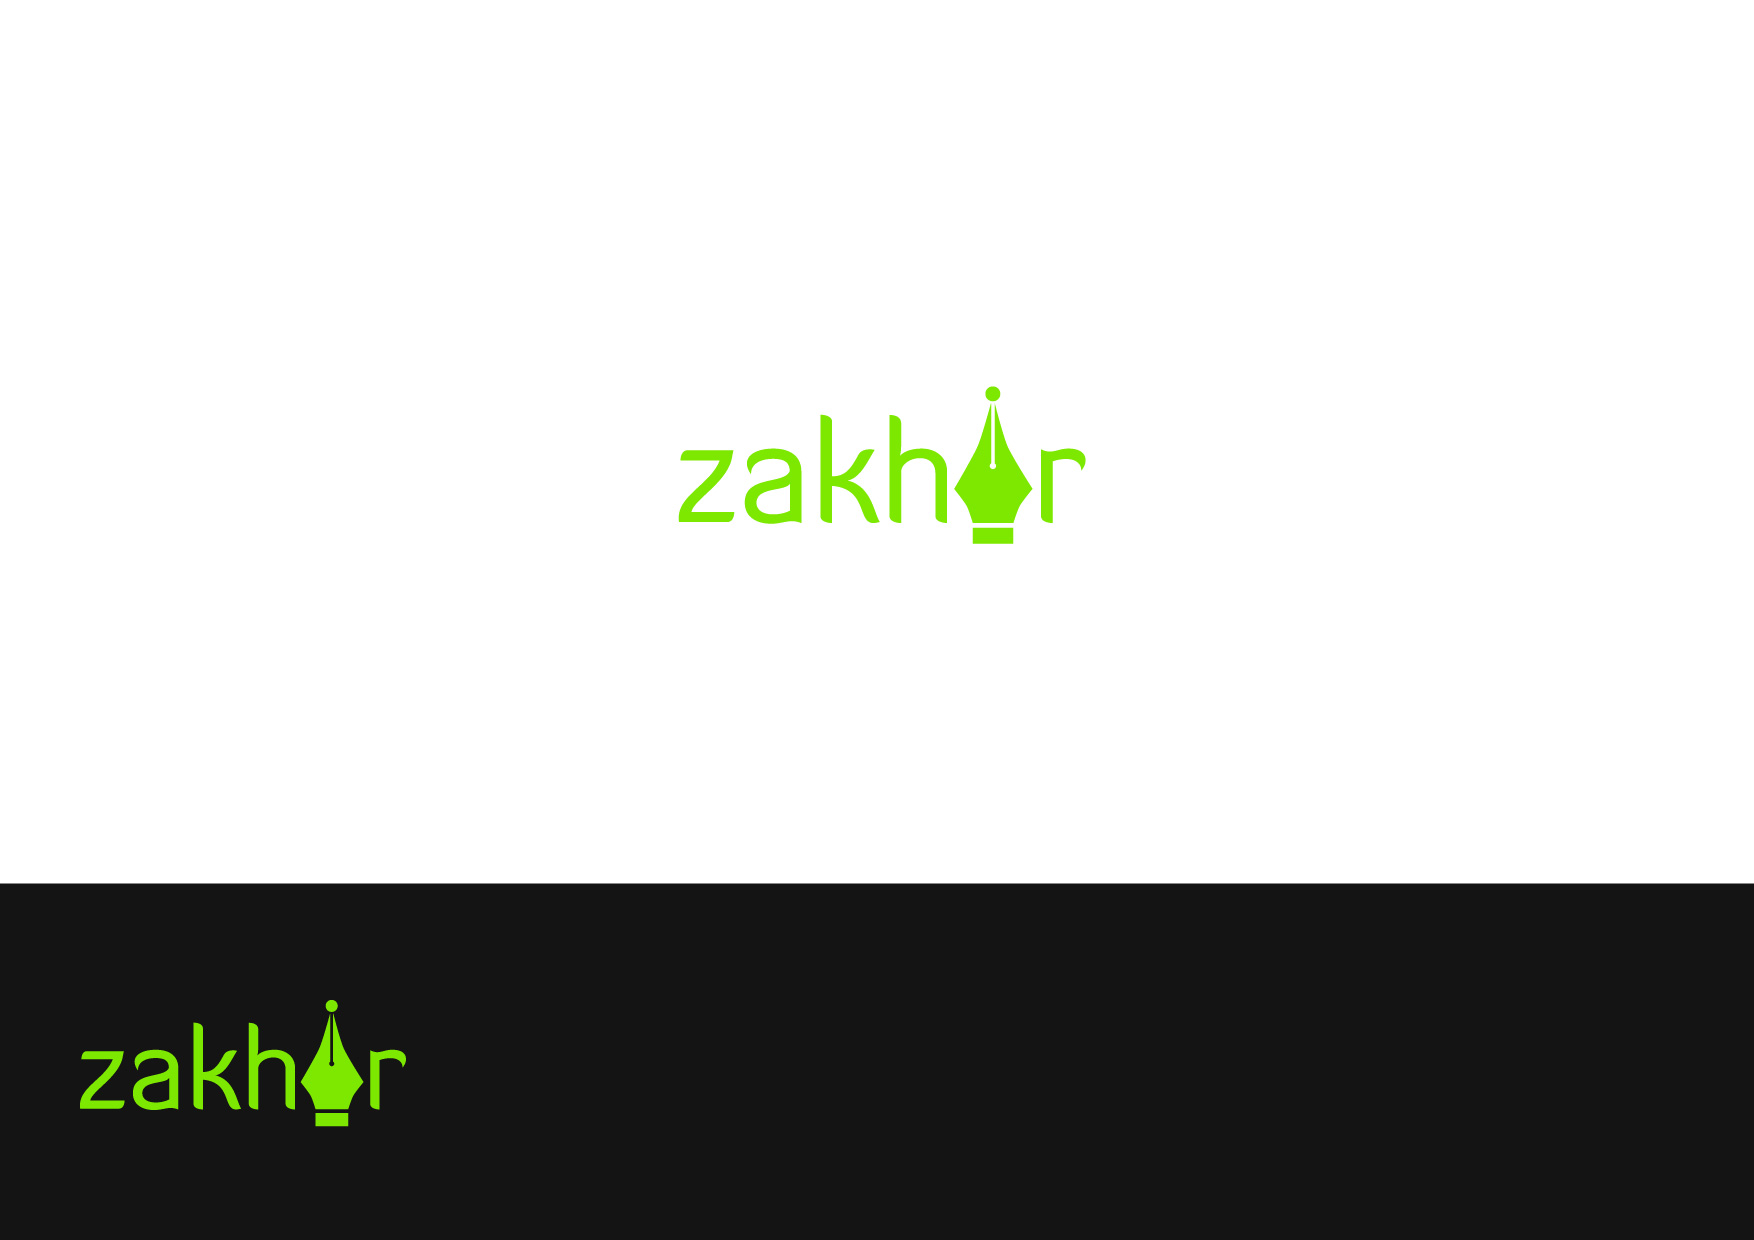 Logo Design by Osi Indra - Entry No. 6 in the Logo Design Contest Zakhir Logo Design.